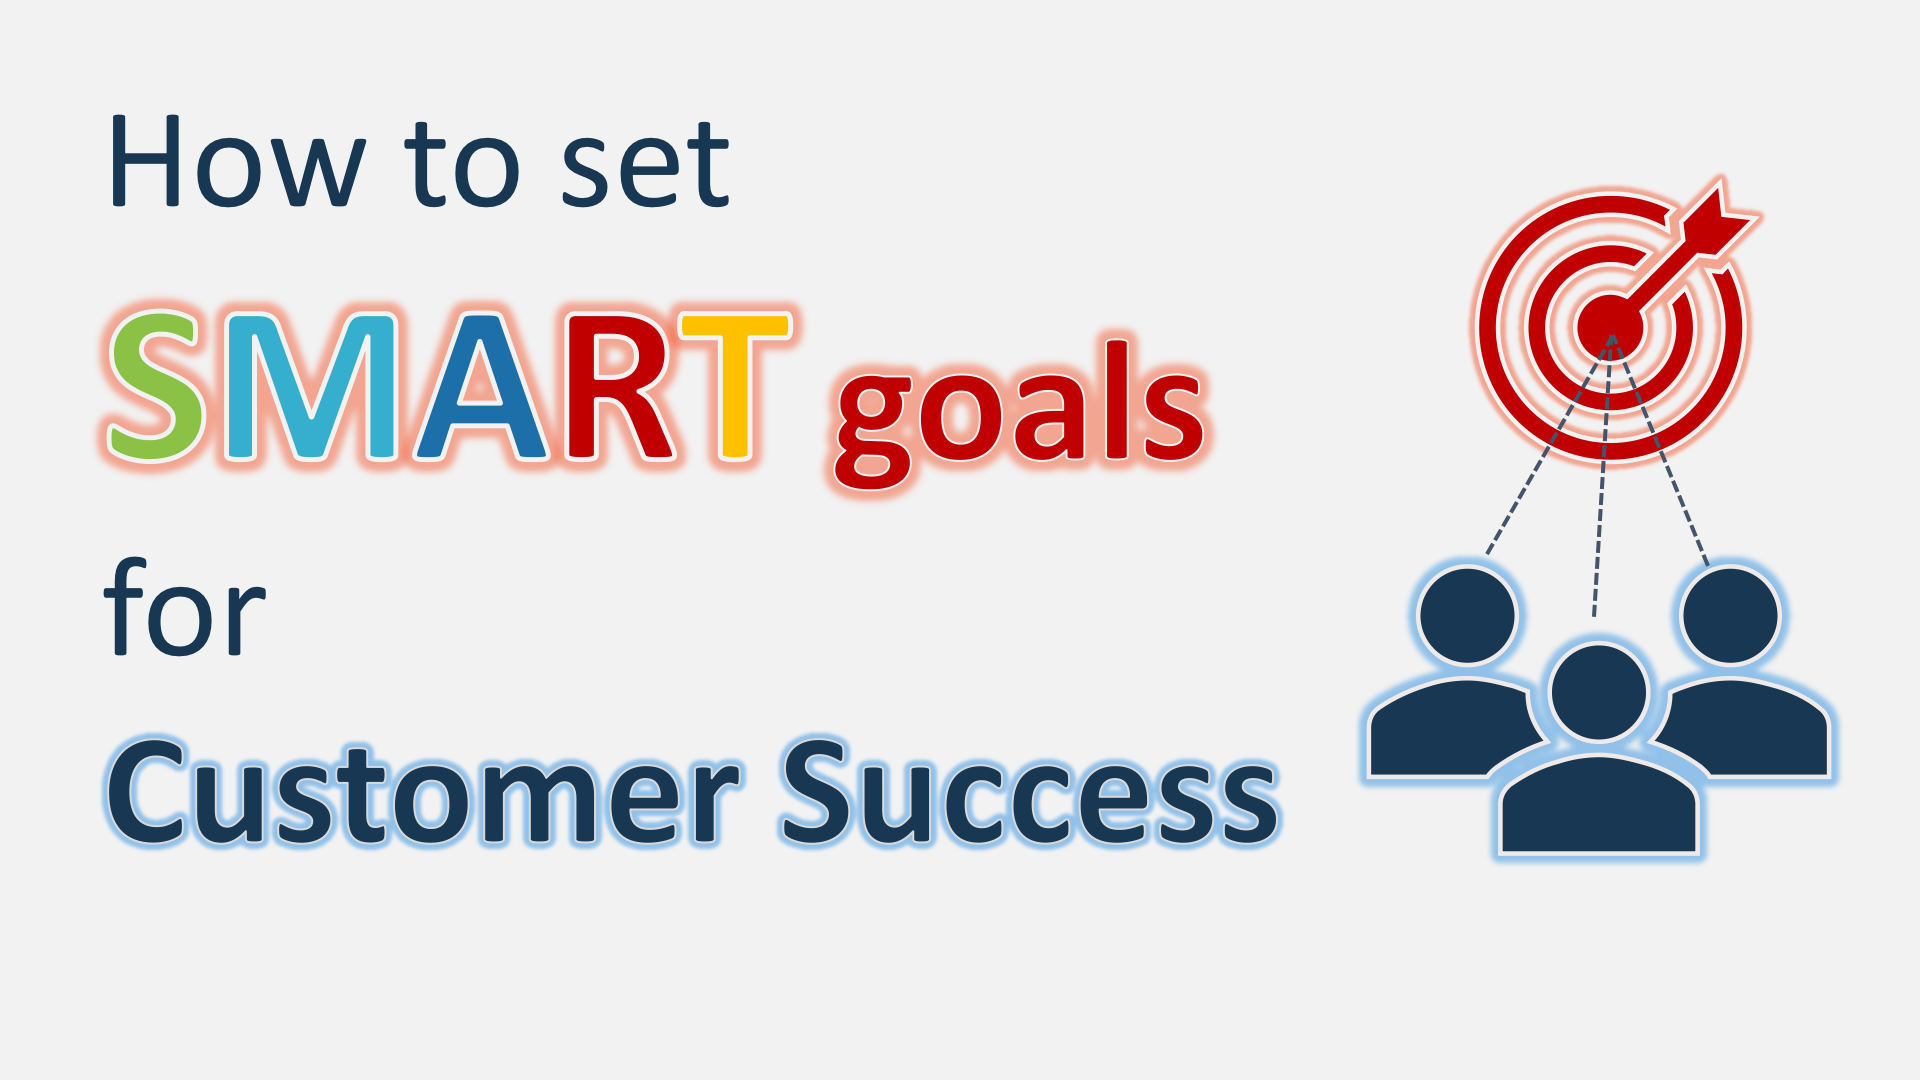 How to set SMART objectives and goals for your Customer